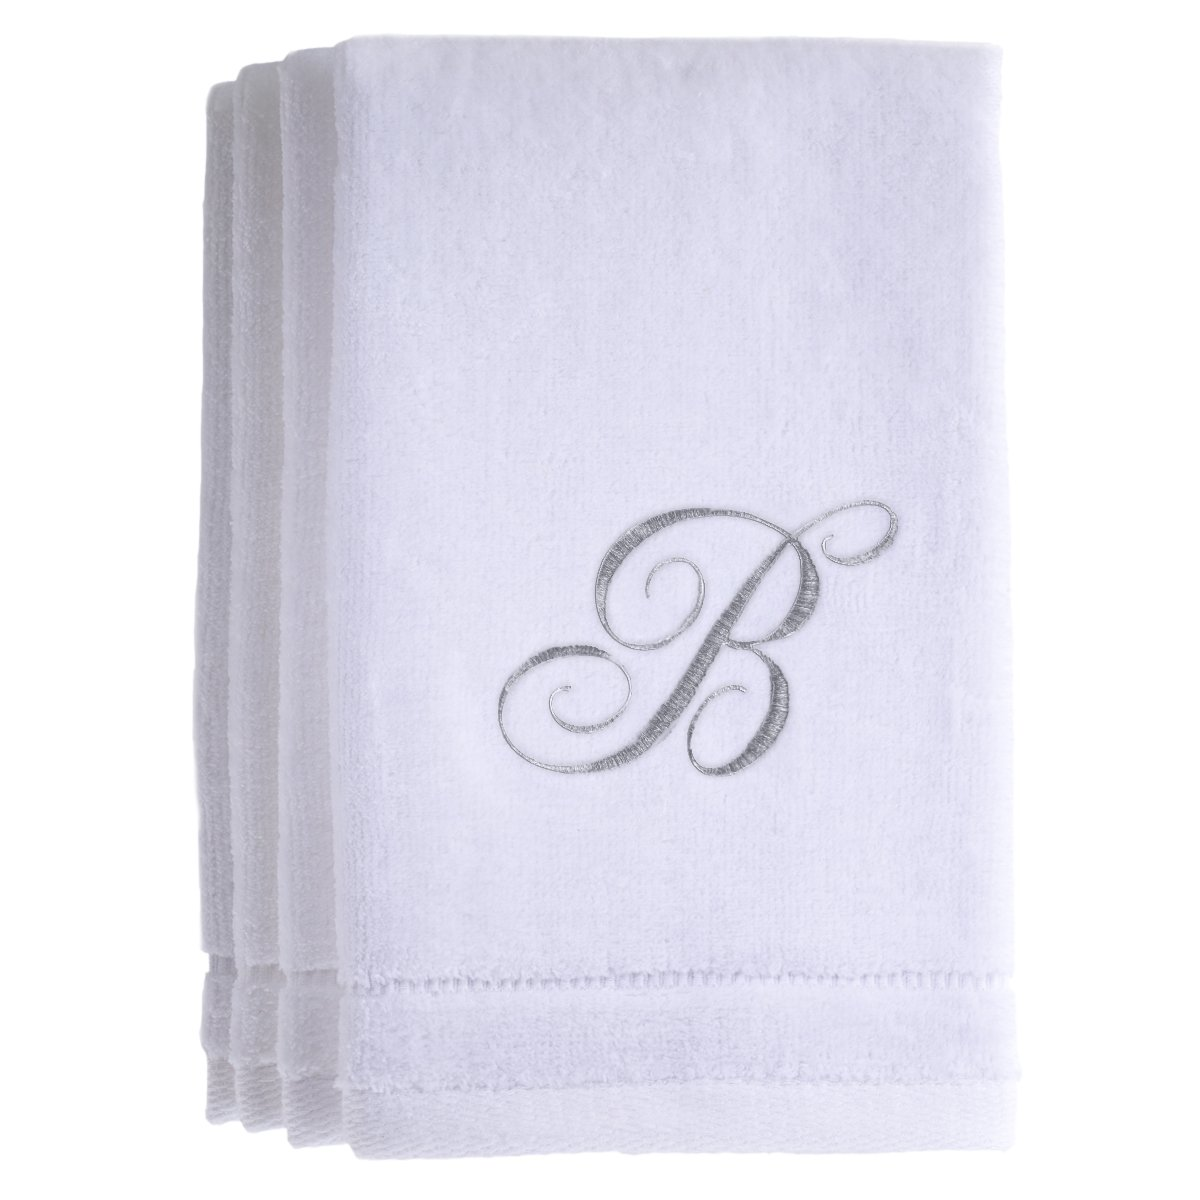 Monogrammed Towels Fingertip, Personalized Gift, 11 x 18 Inches - Set of 4- Silver Embroidered Towel - Extra Absorbent 100% Cotton- Soft Velour Finish - For Bathroom/ Kitchen/ Spa- Initial B (White)